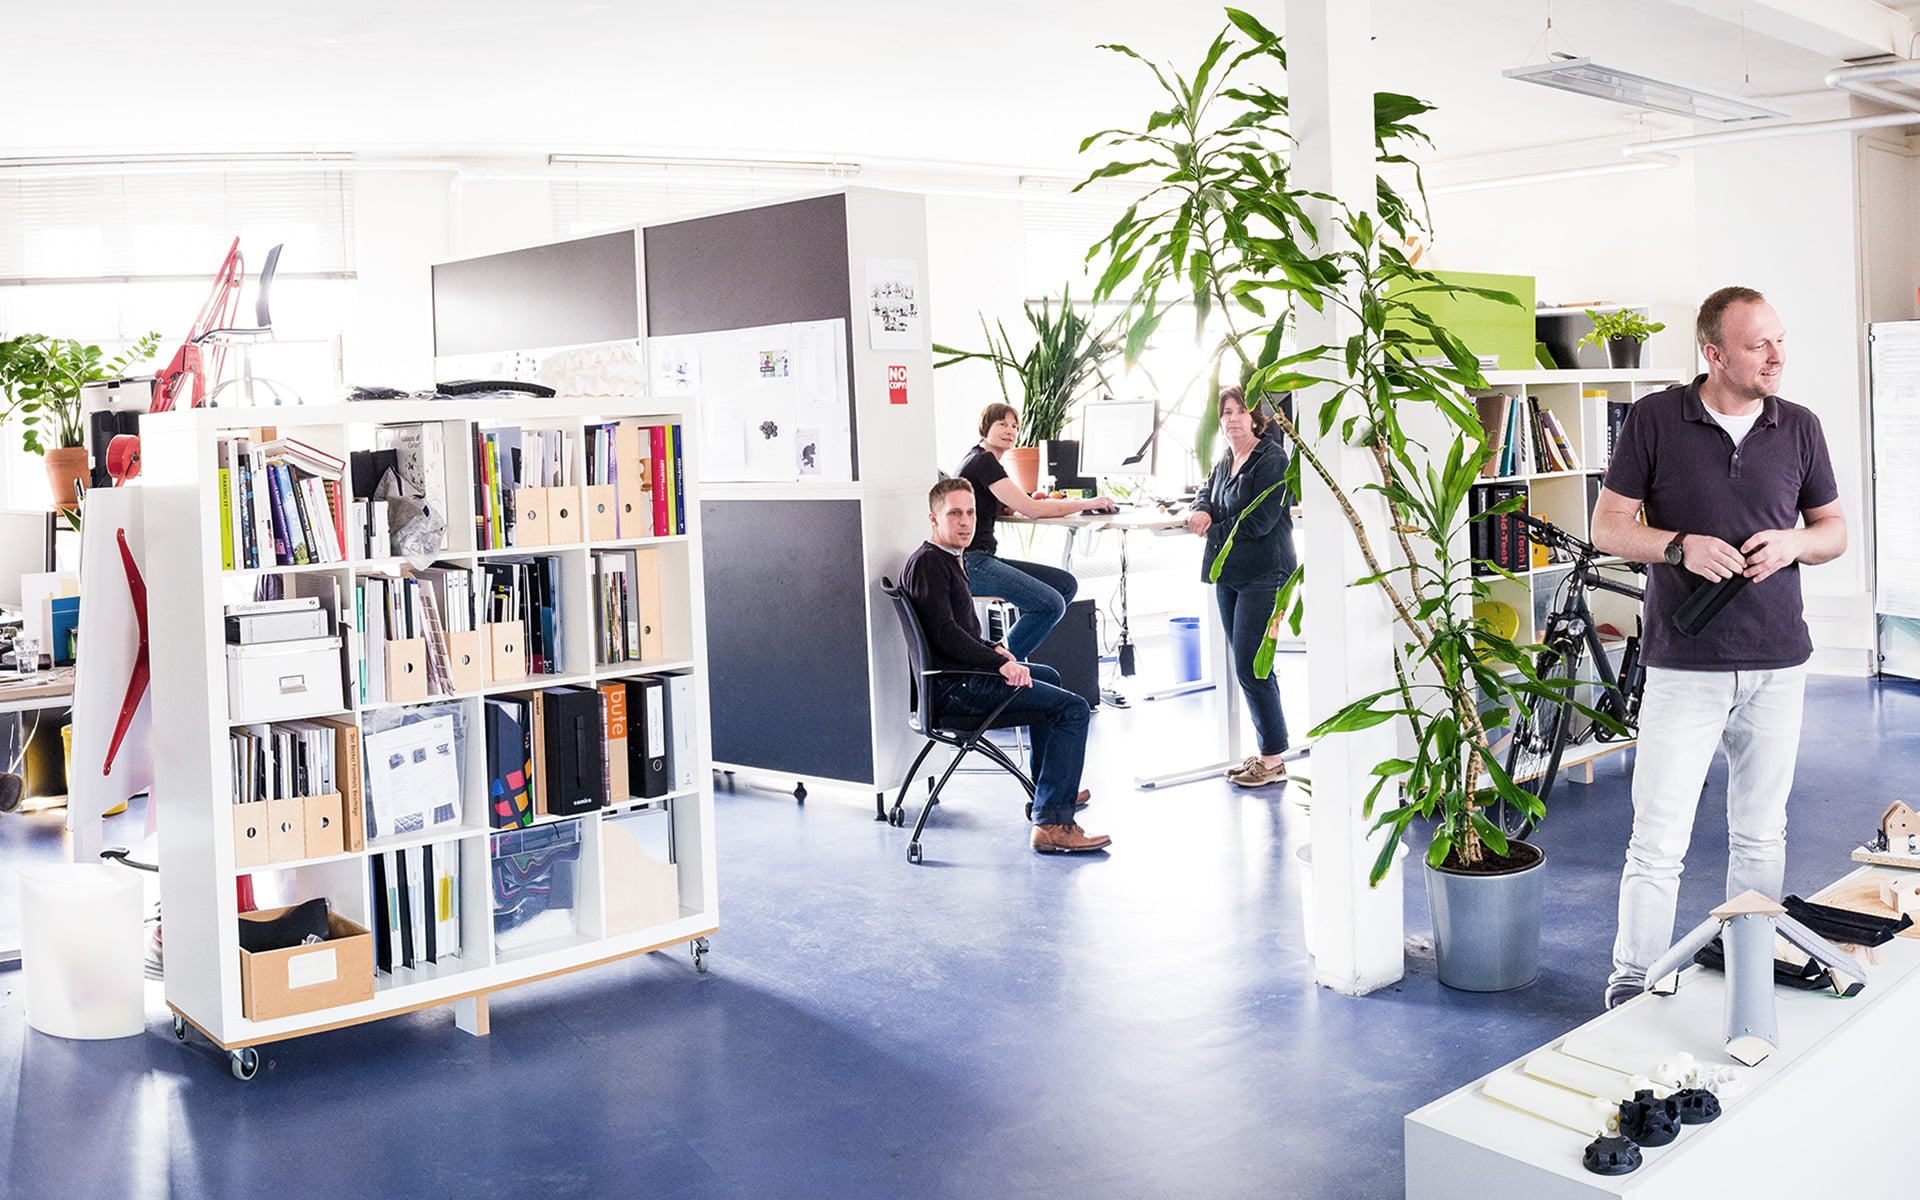 Four ITO Design colleagues in the bright open space office